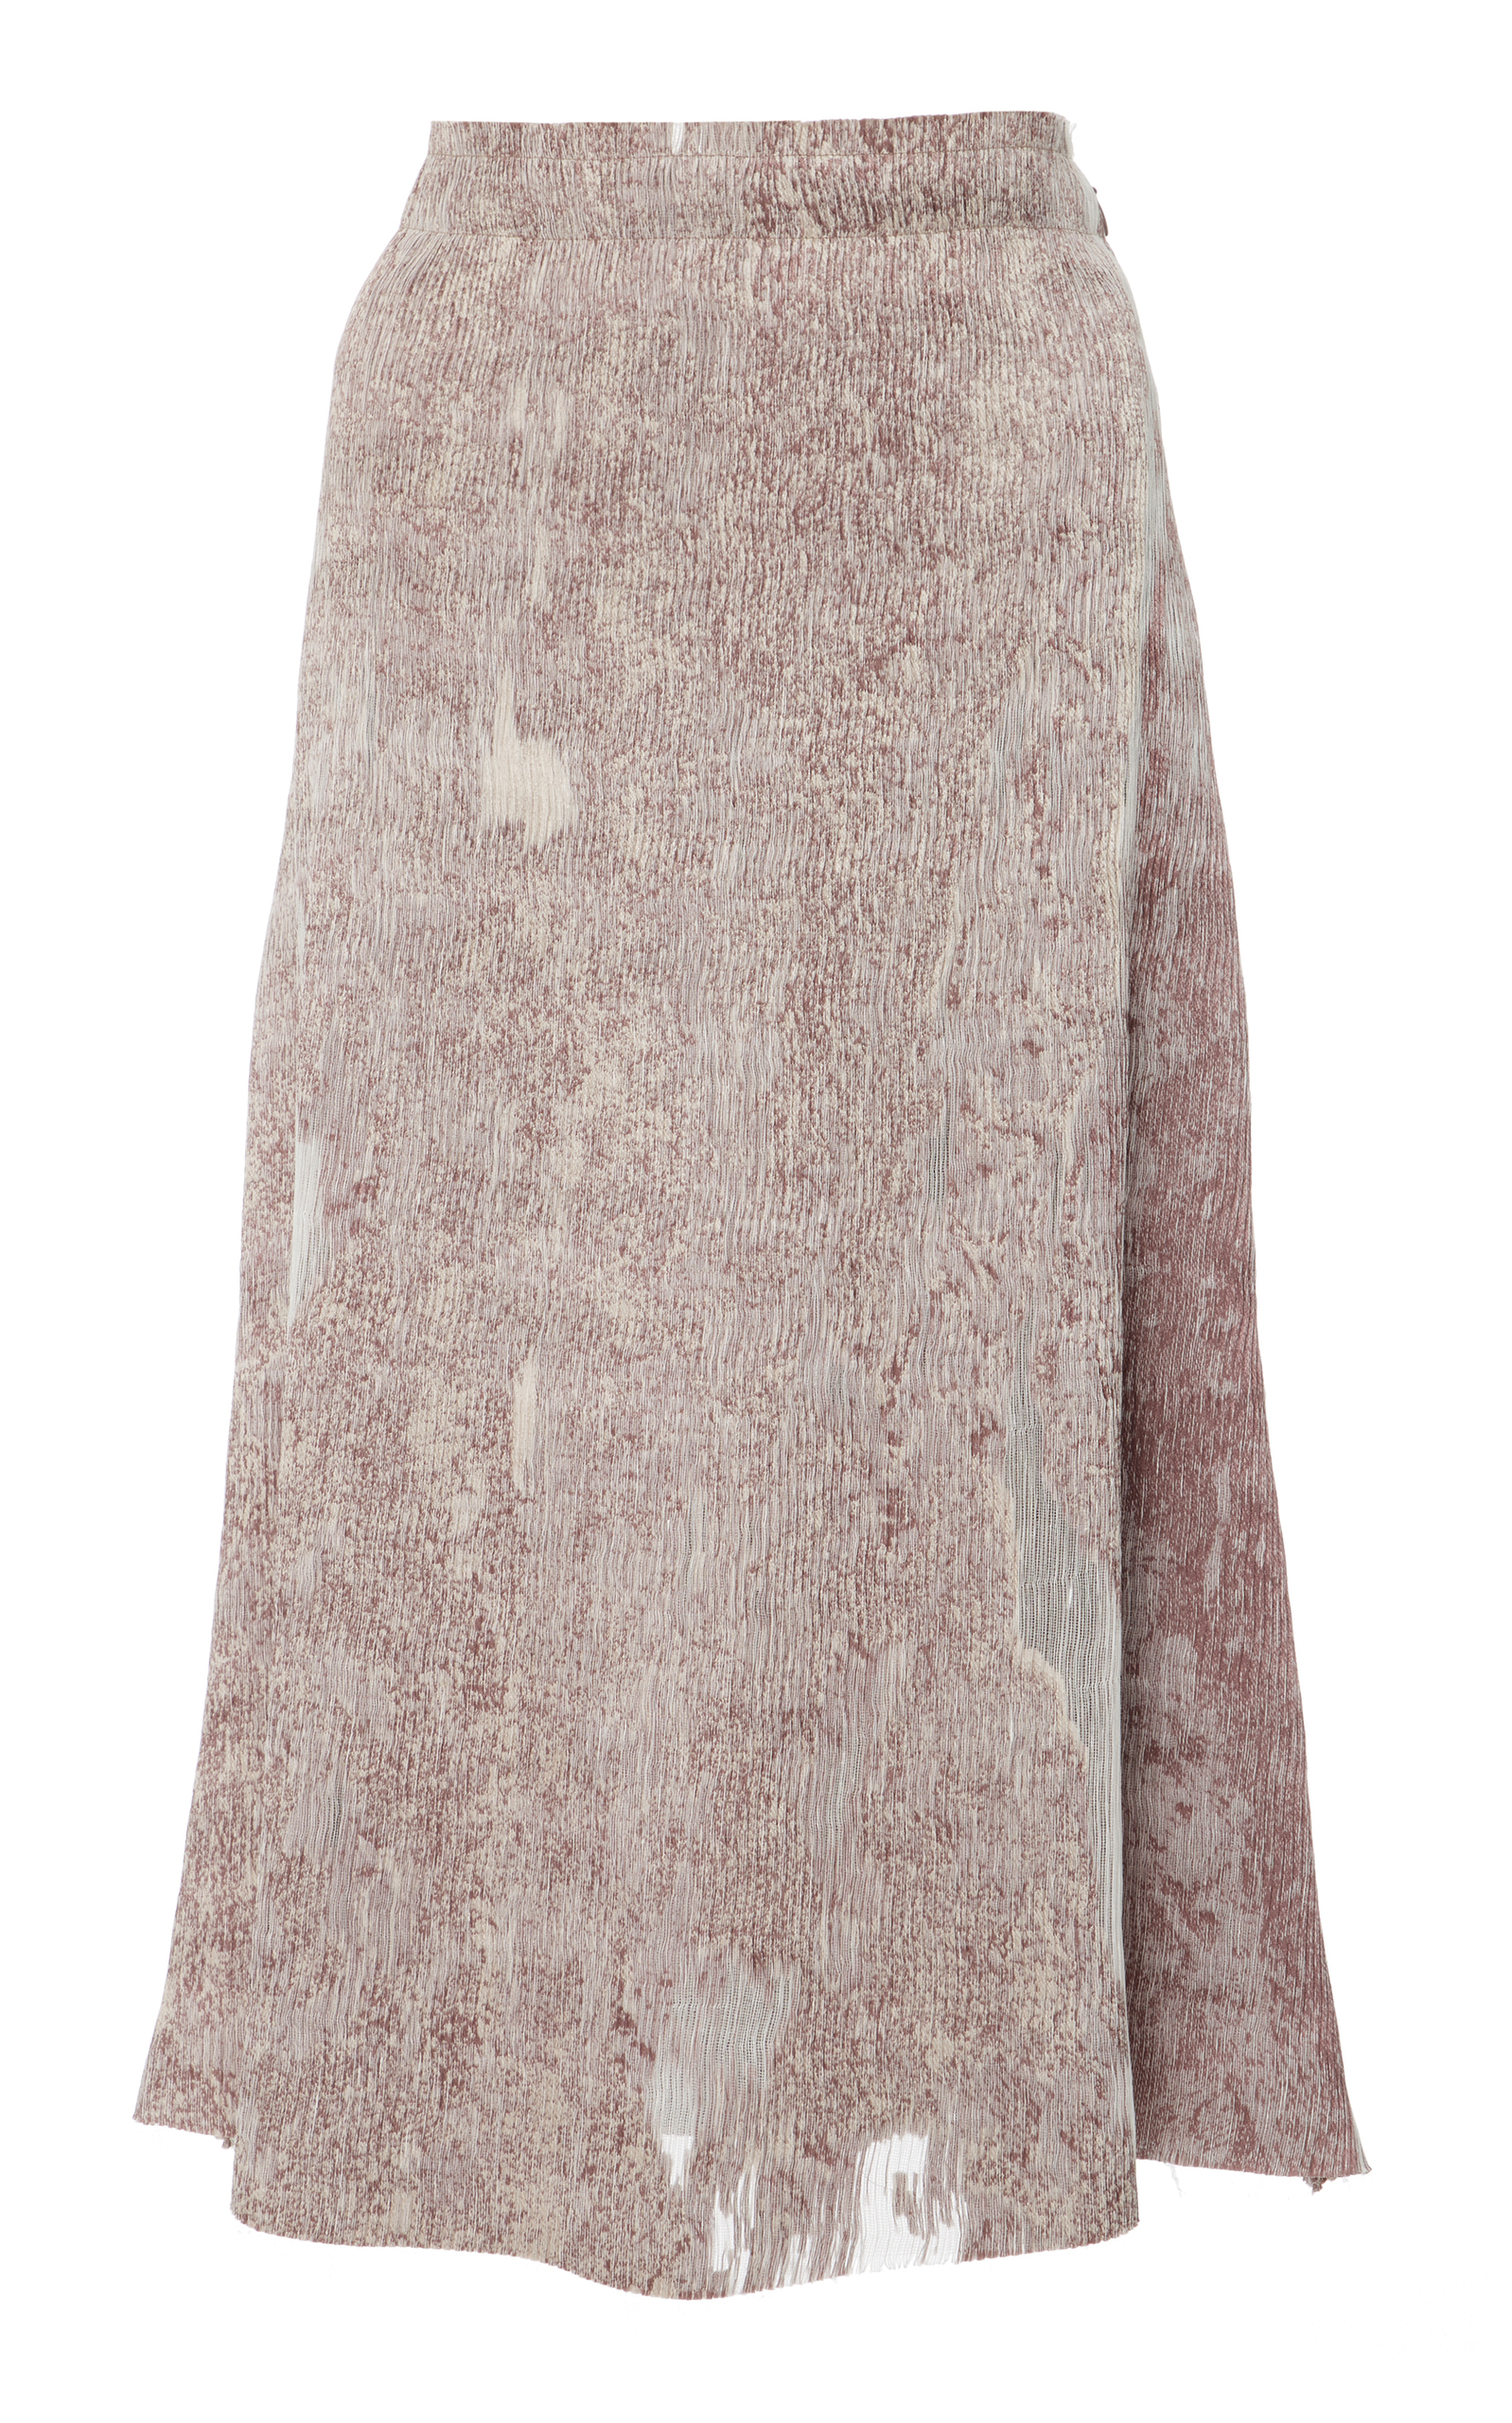 YEON Khalida Skirt in Pink